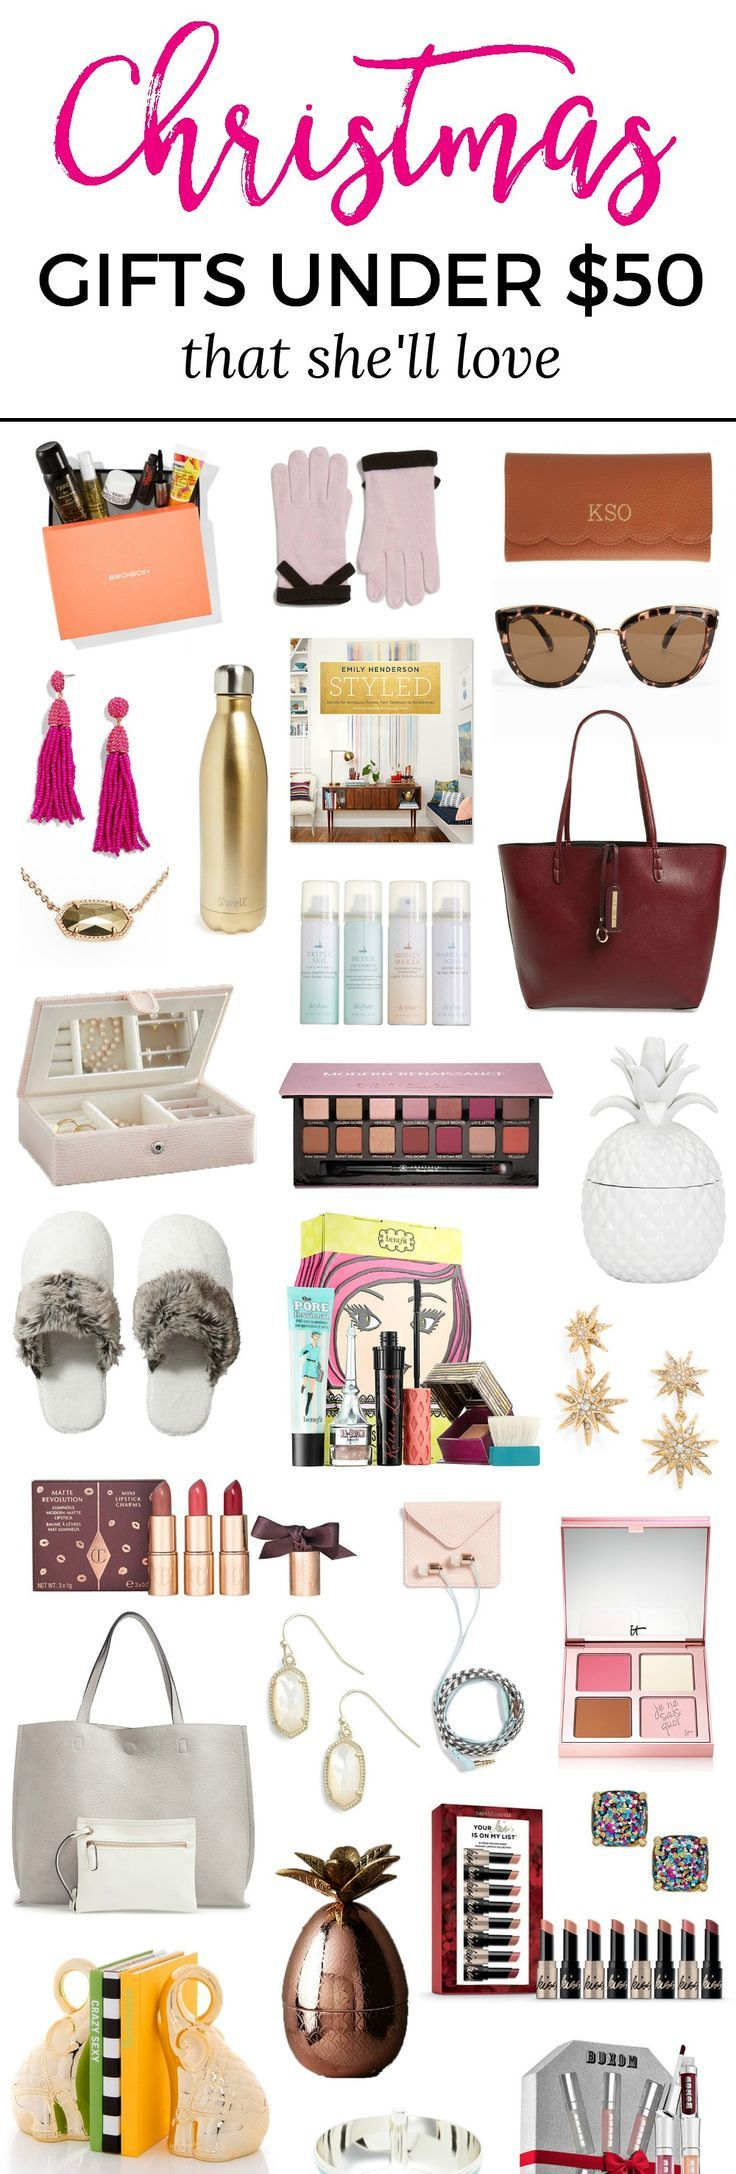 the best christmas gift ideas for women under 50 you wont want to miss this adorable christmas gift guide for women created by florida beauty and fashion